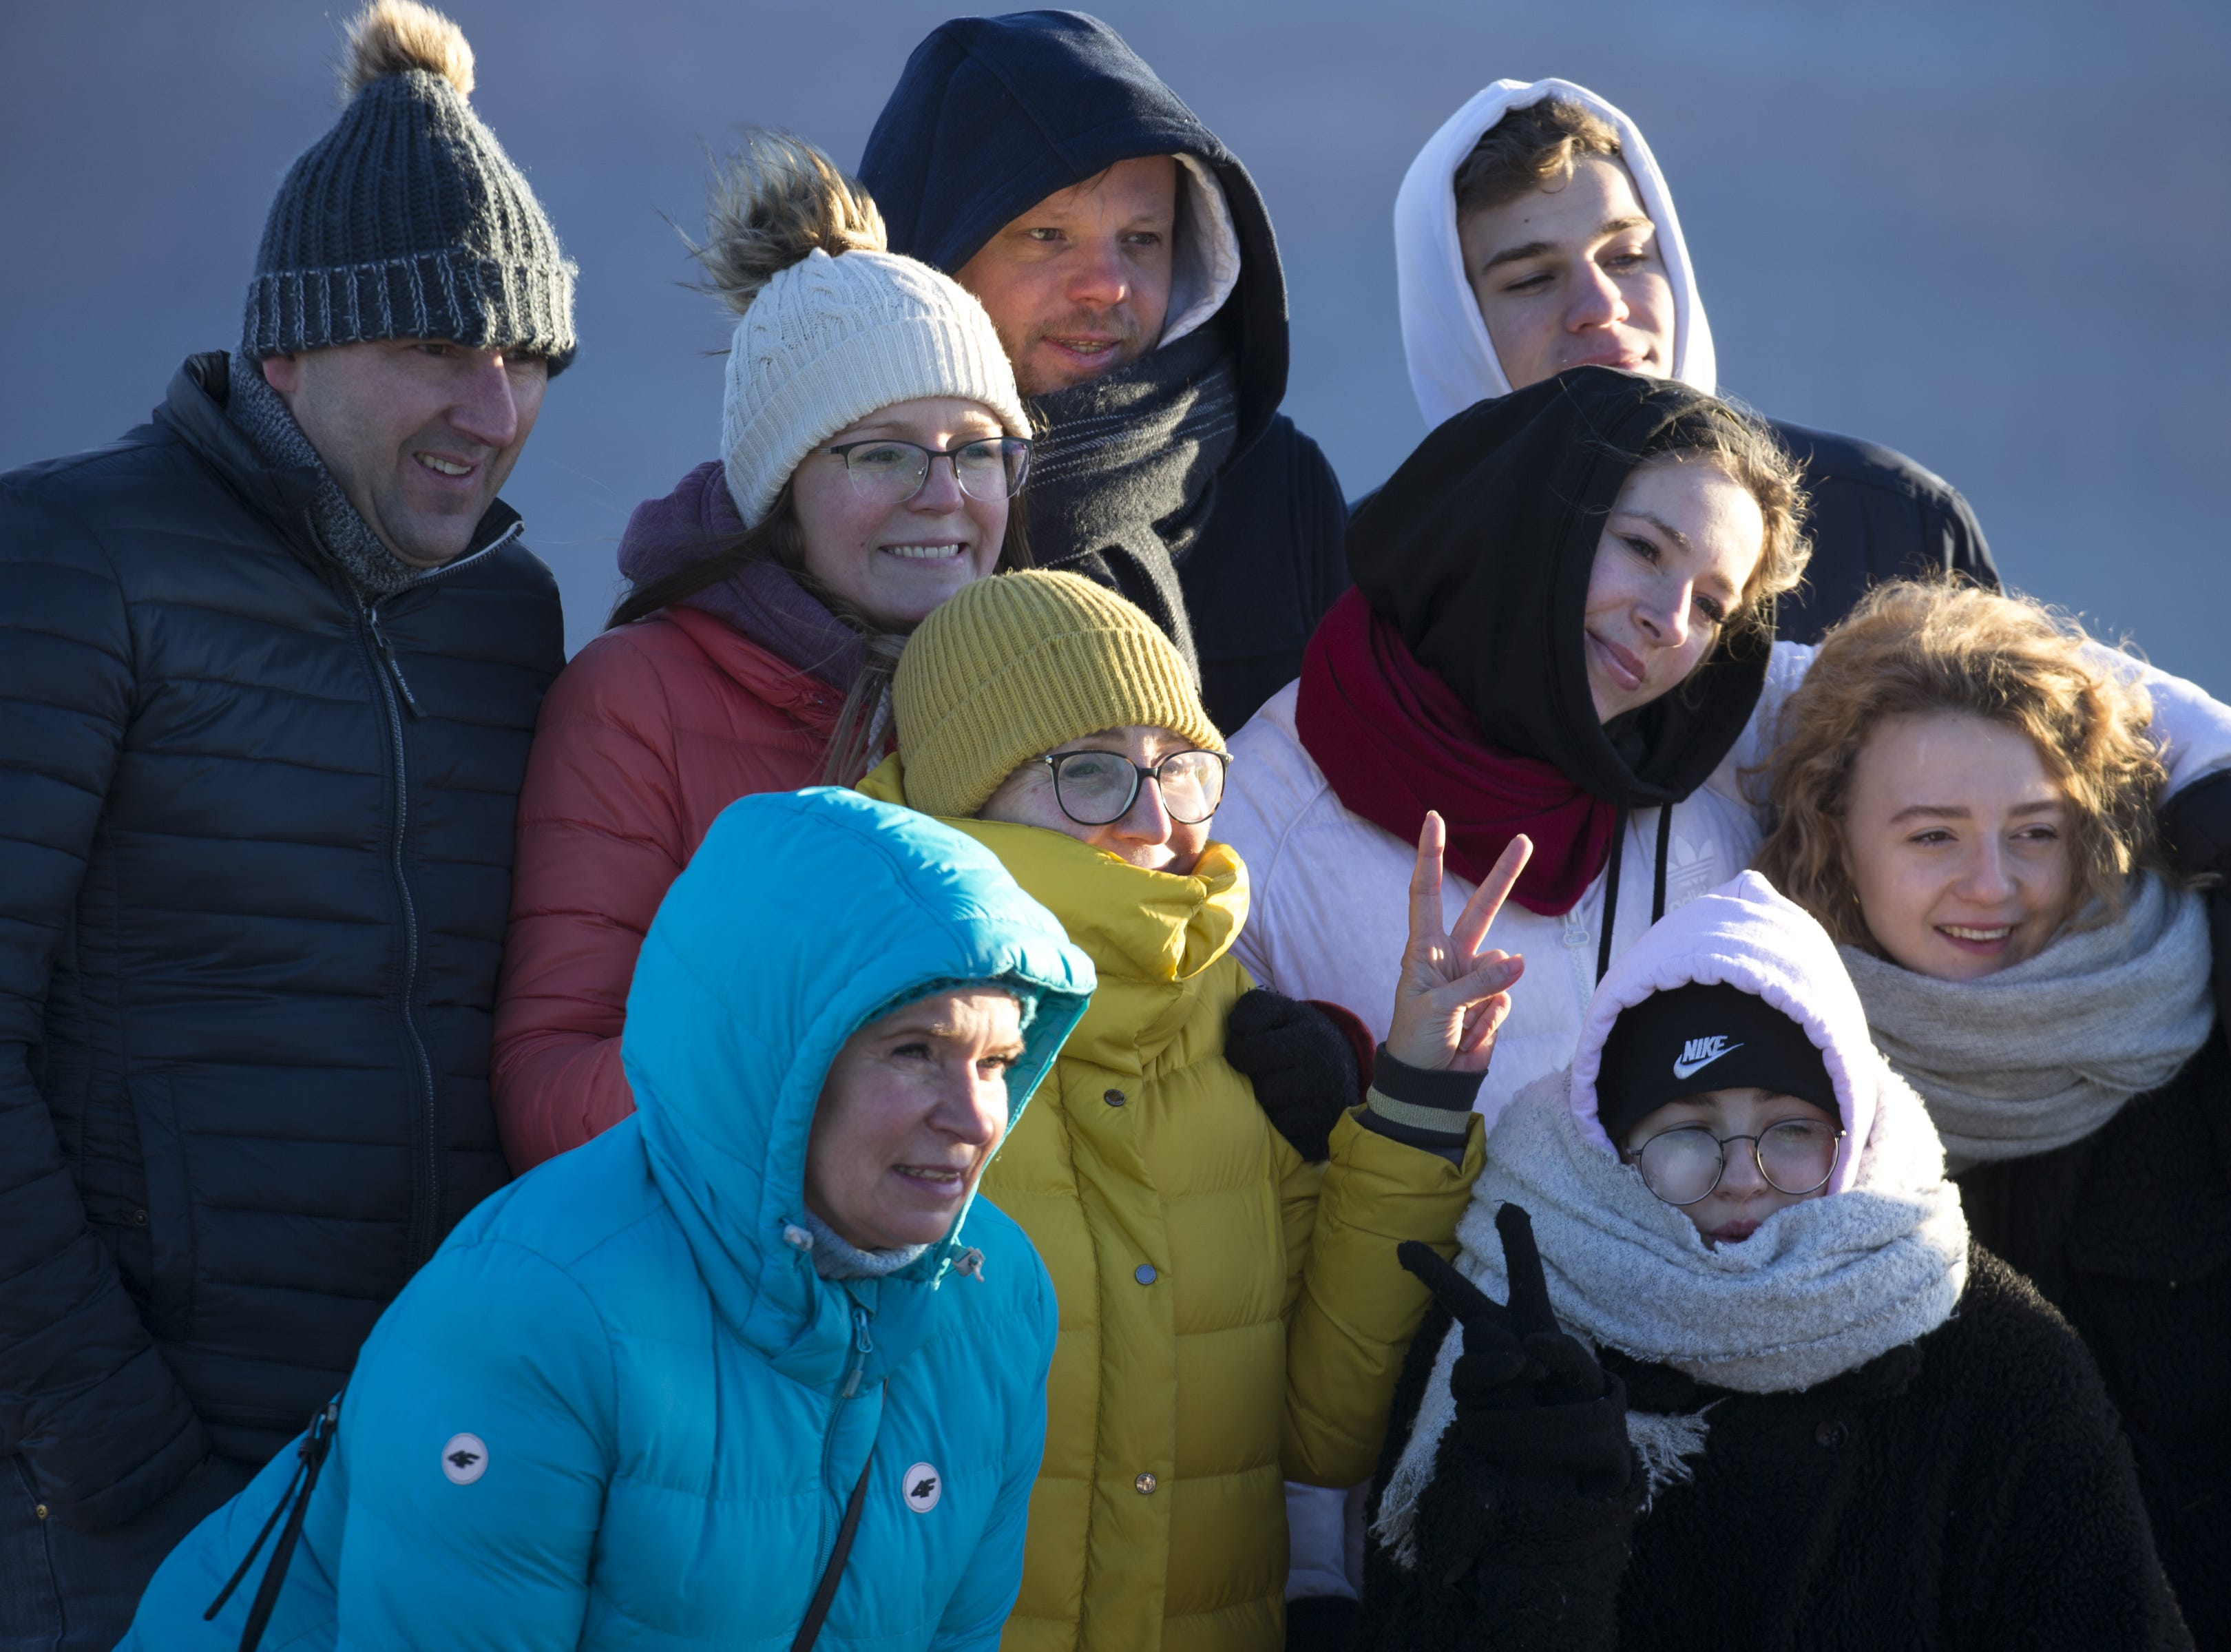 Visitors take a group photo at Mather Point at the South Rim of Grand Canyon National Park, Ariz, on Feb. 20, 2019